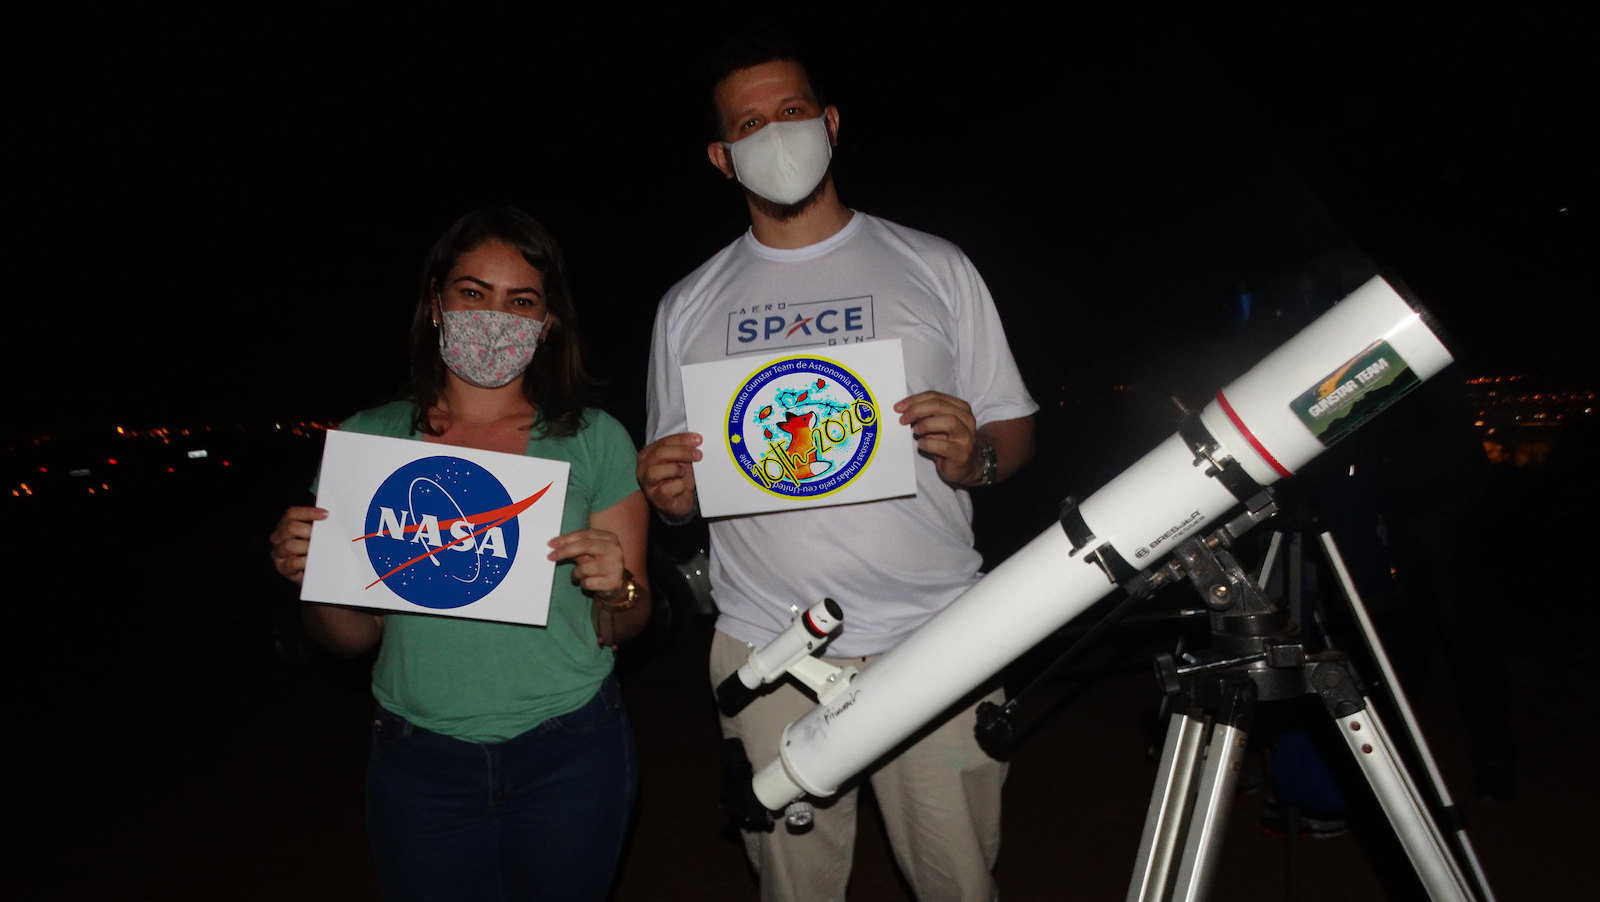 slide 2 - Two people wearing masks and standing next to a telescope, holding signs with the NASA logo and Gunstar Team Cultural Astronomy Club logo.